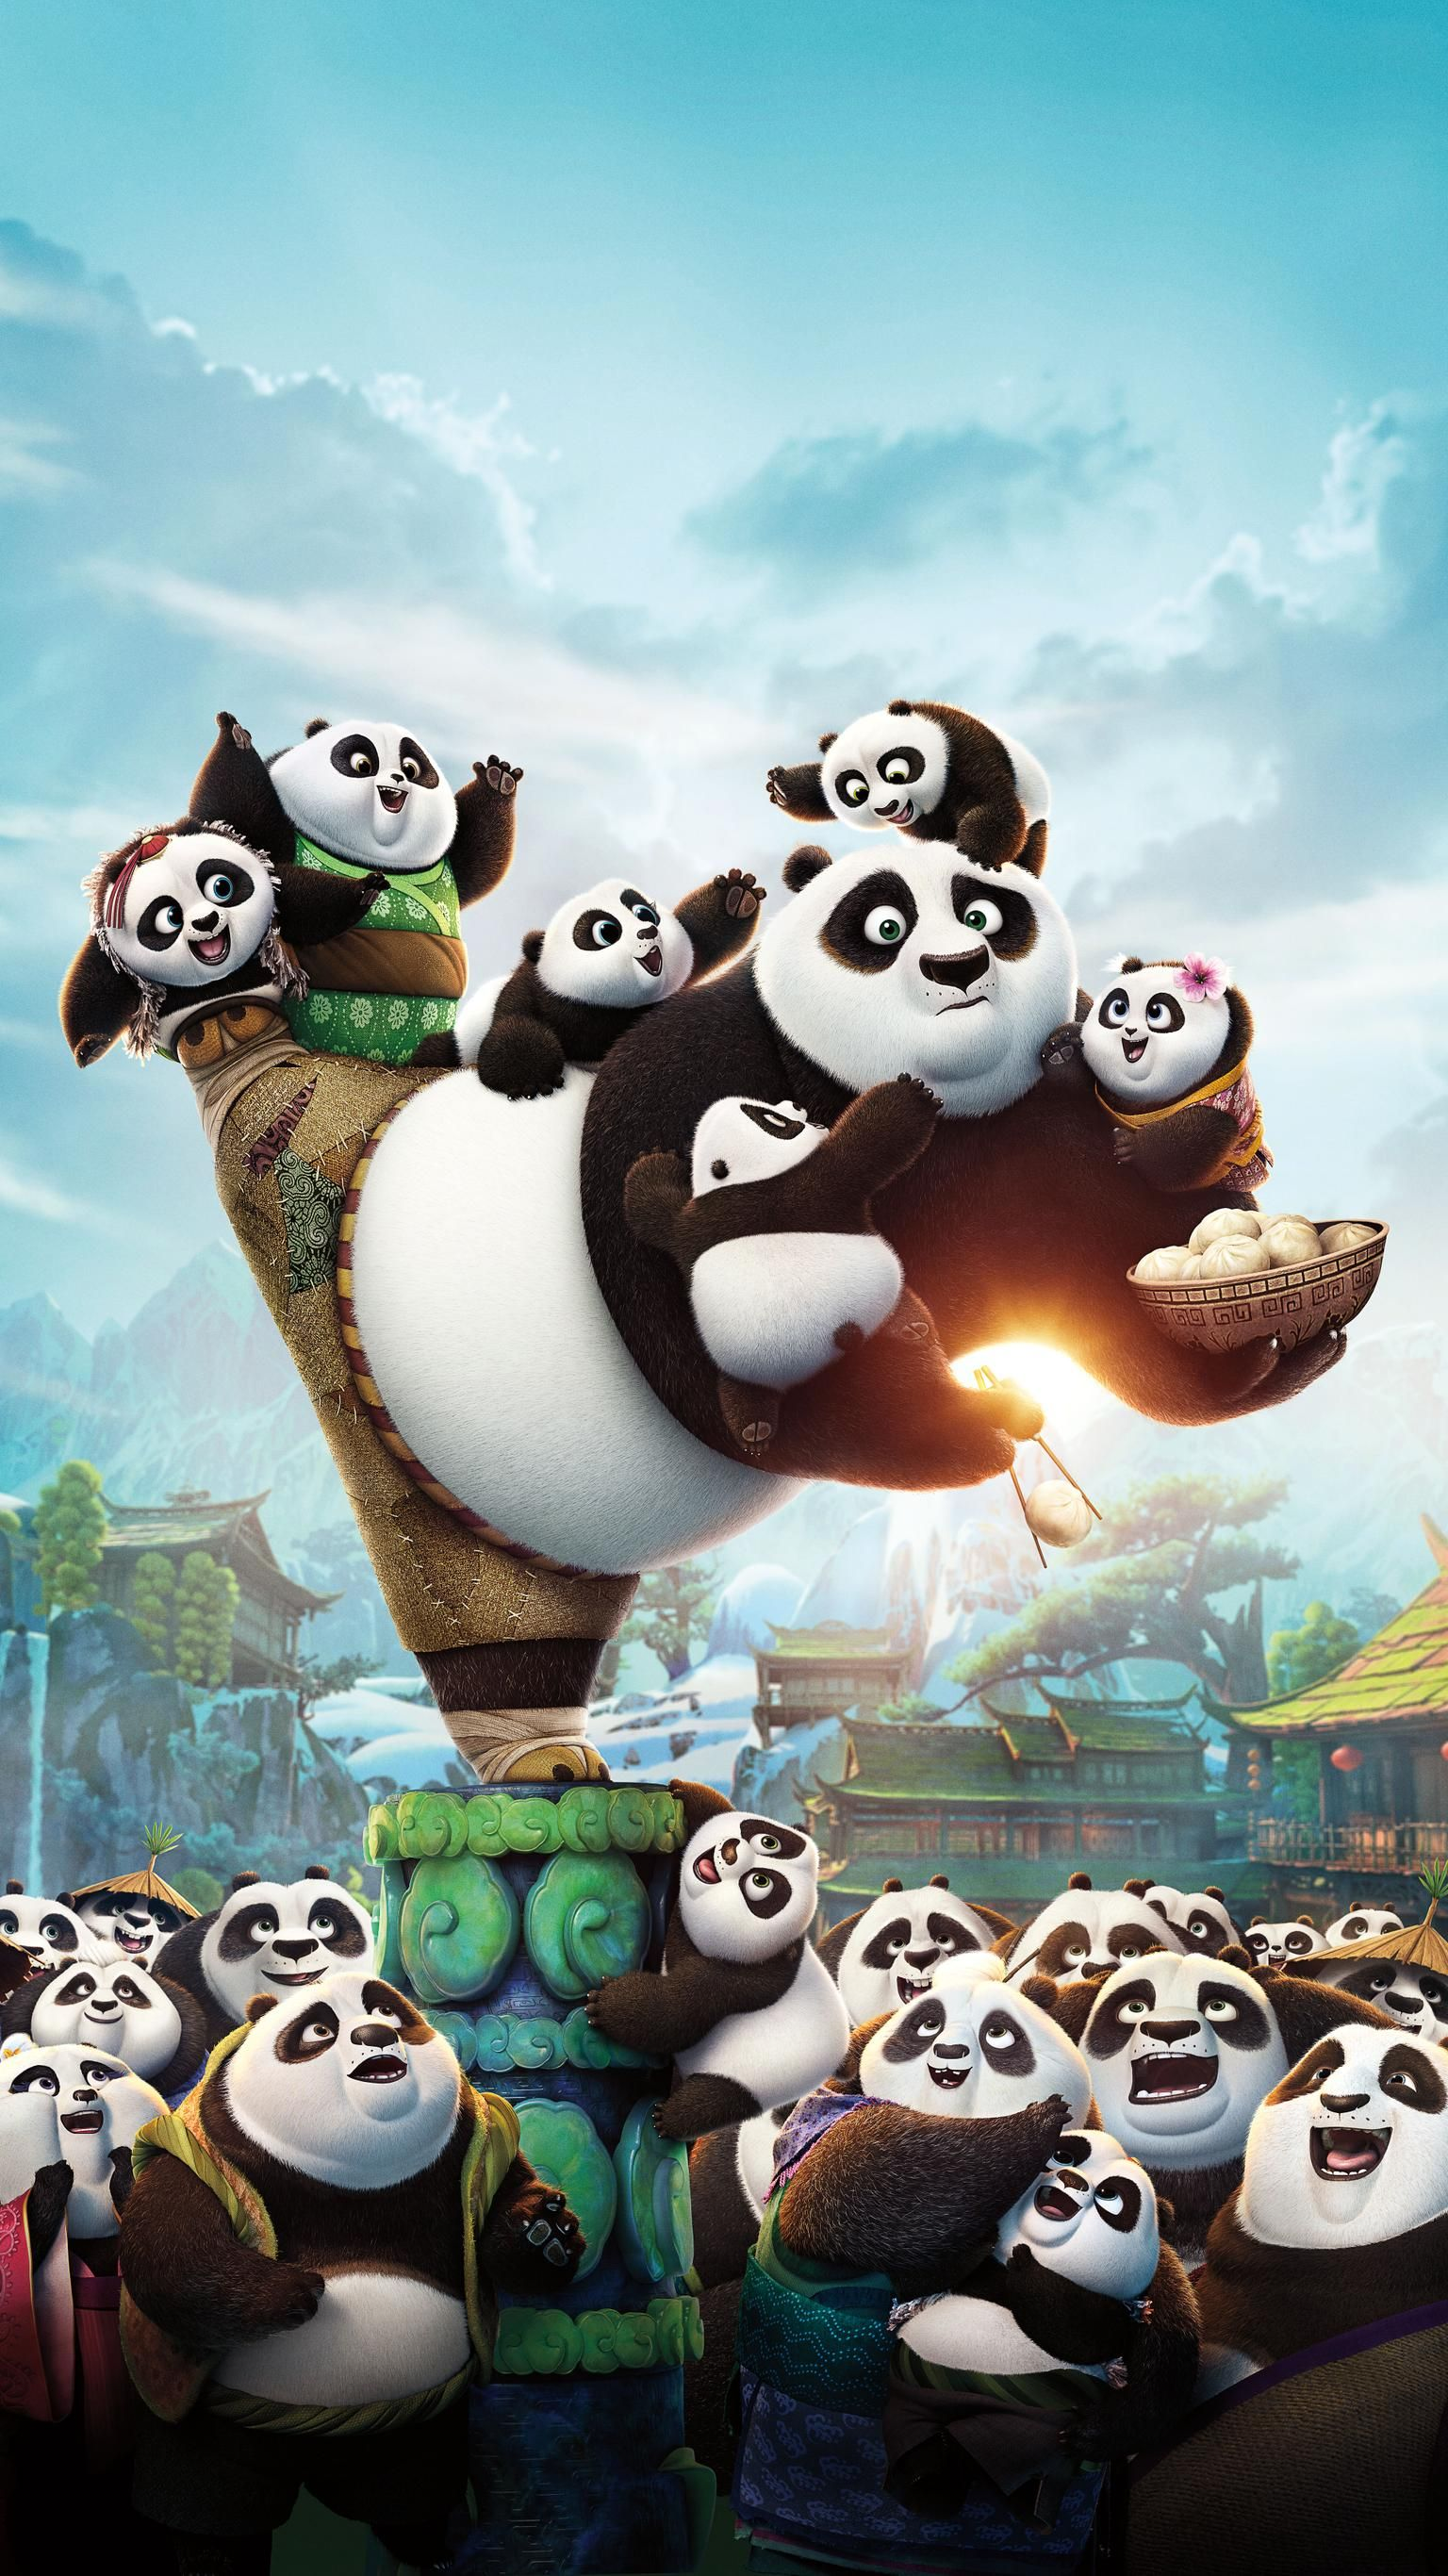 Kung Fu Panda 3 2016 Phone Wallpaper Moviemania Kung Fu Panda 3 Disney Wallpaper Cute Disney Wallpaper